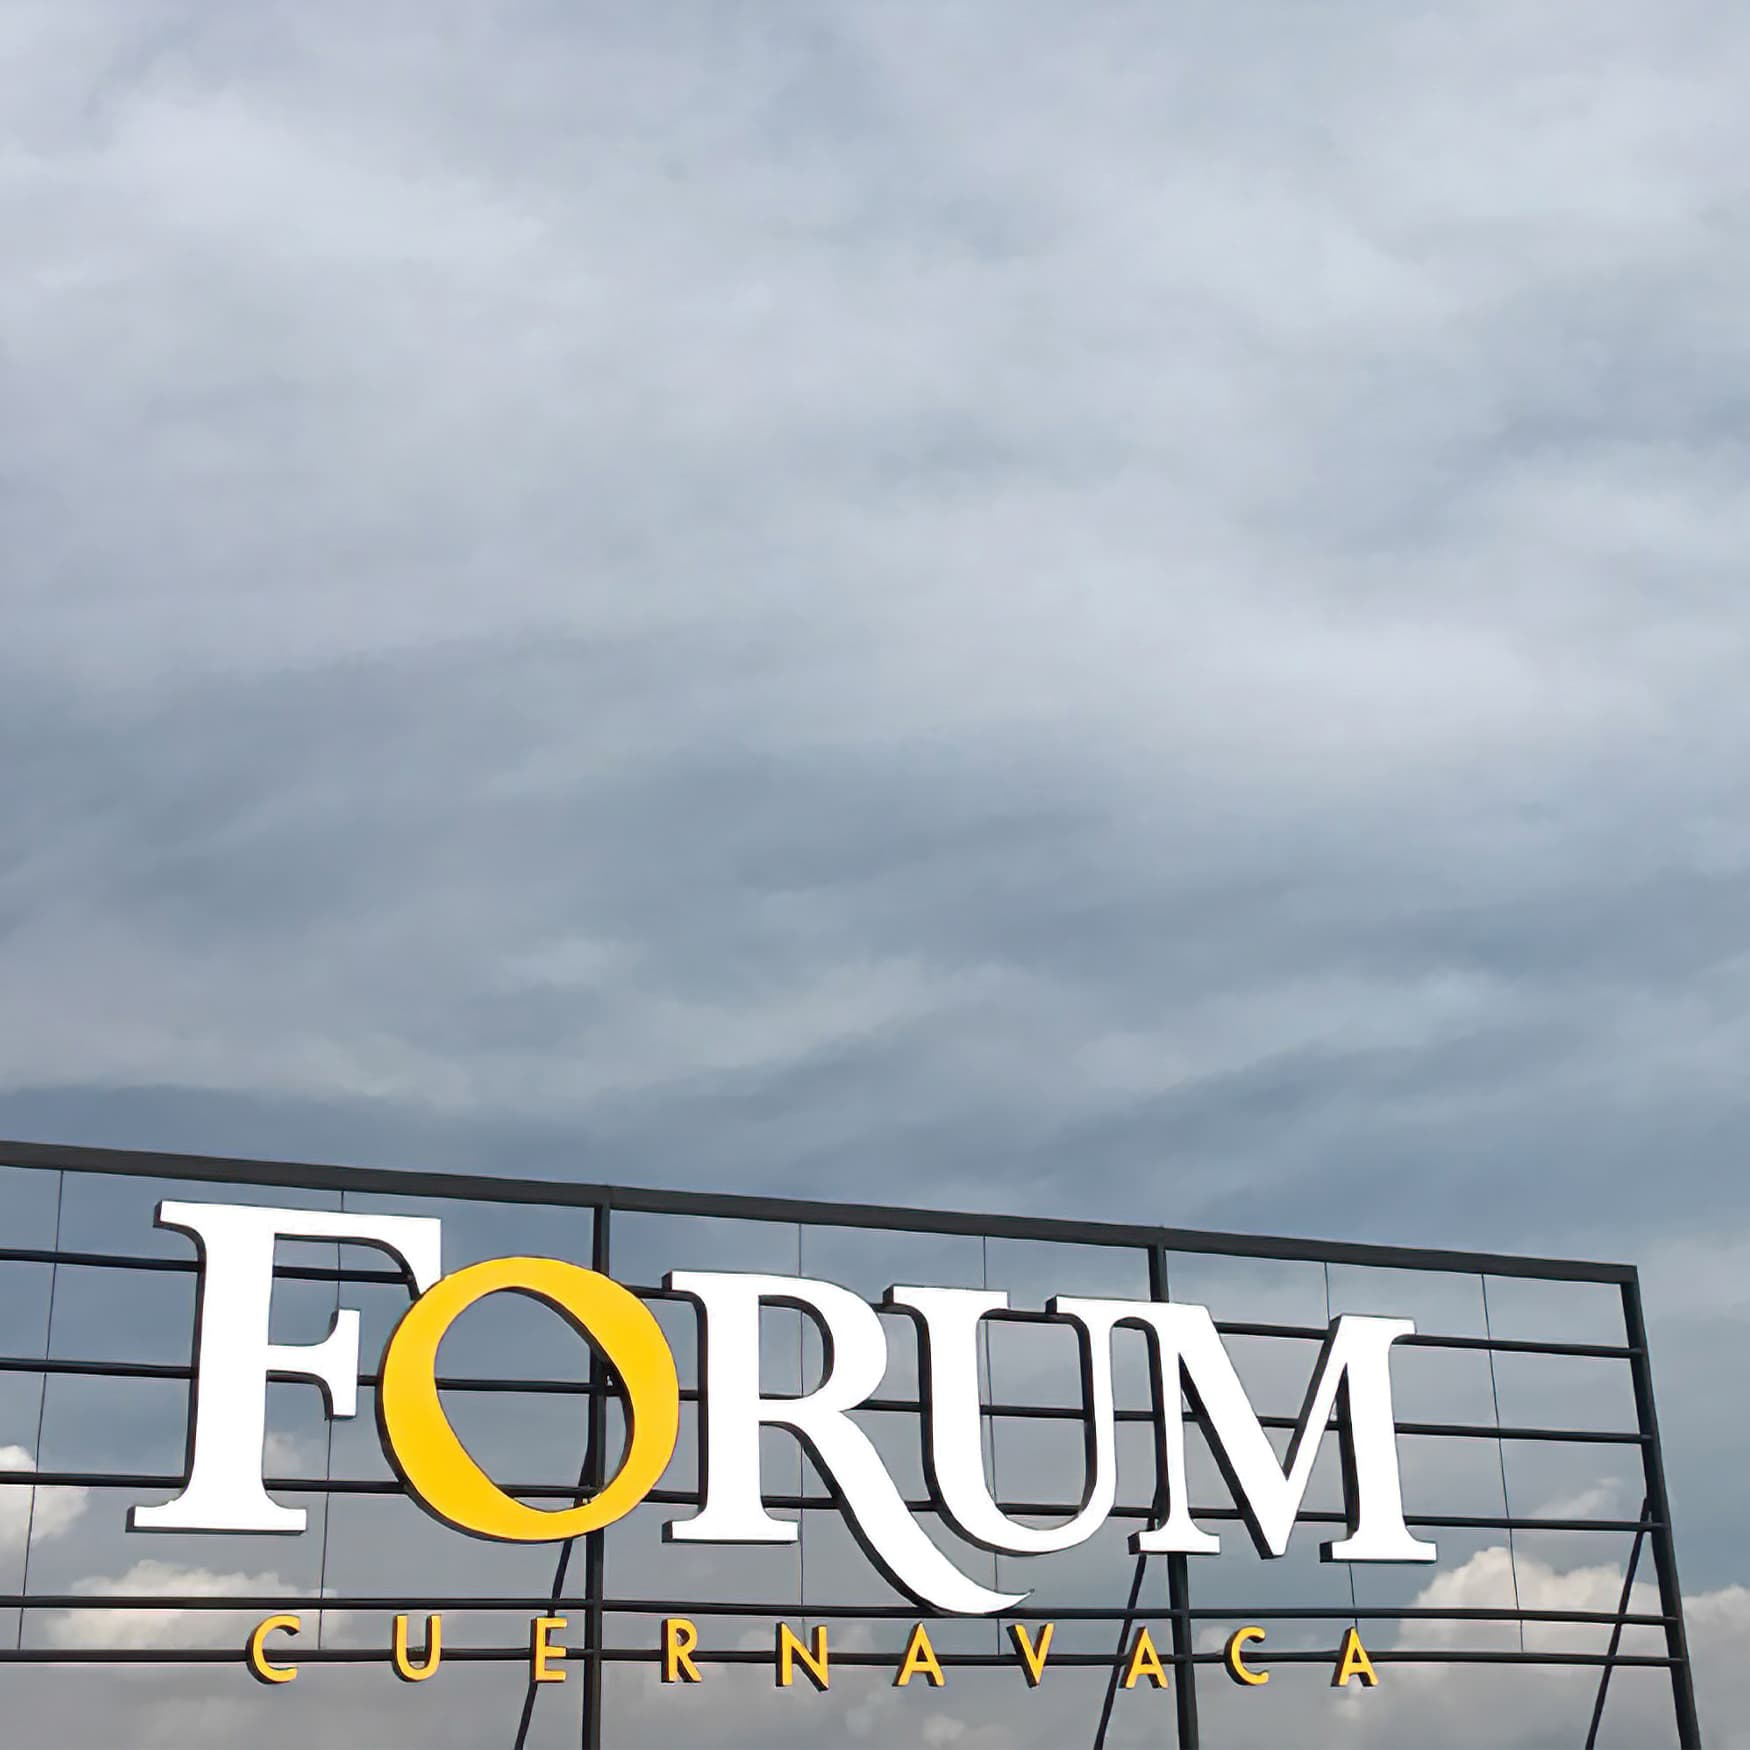 A photograph of a rooftop identity sign designed for Forum Curenavaca